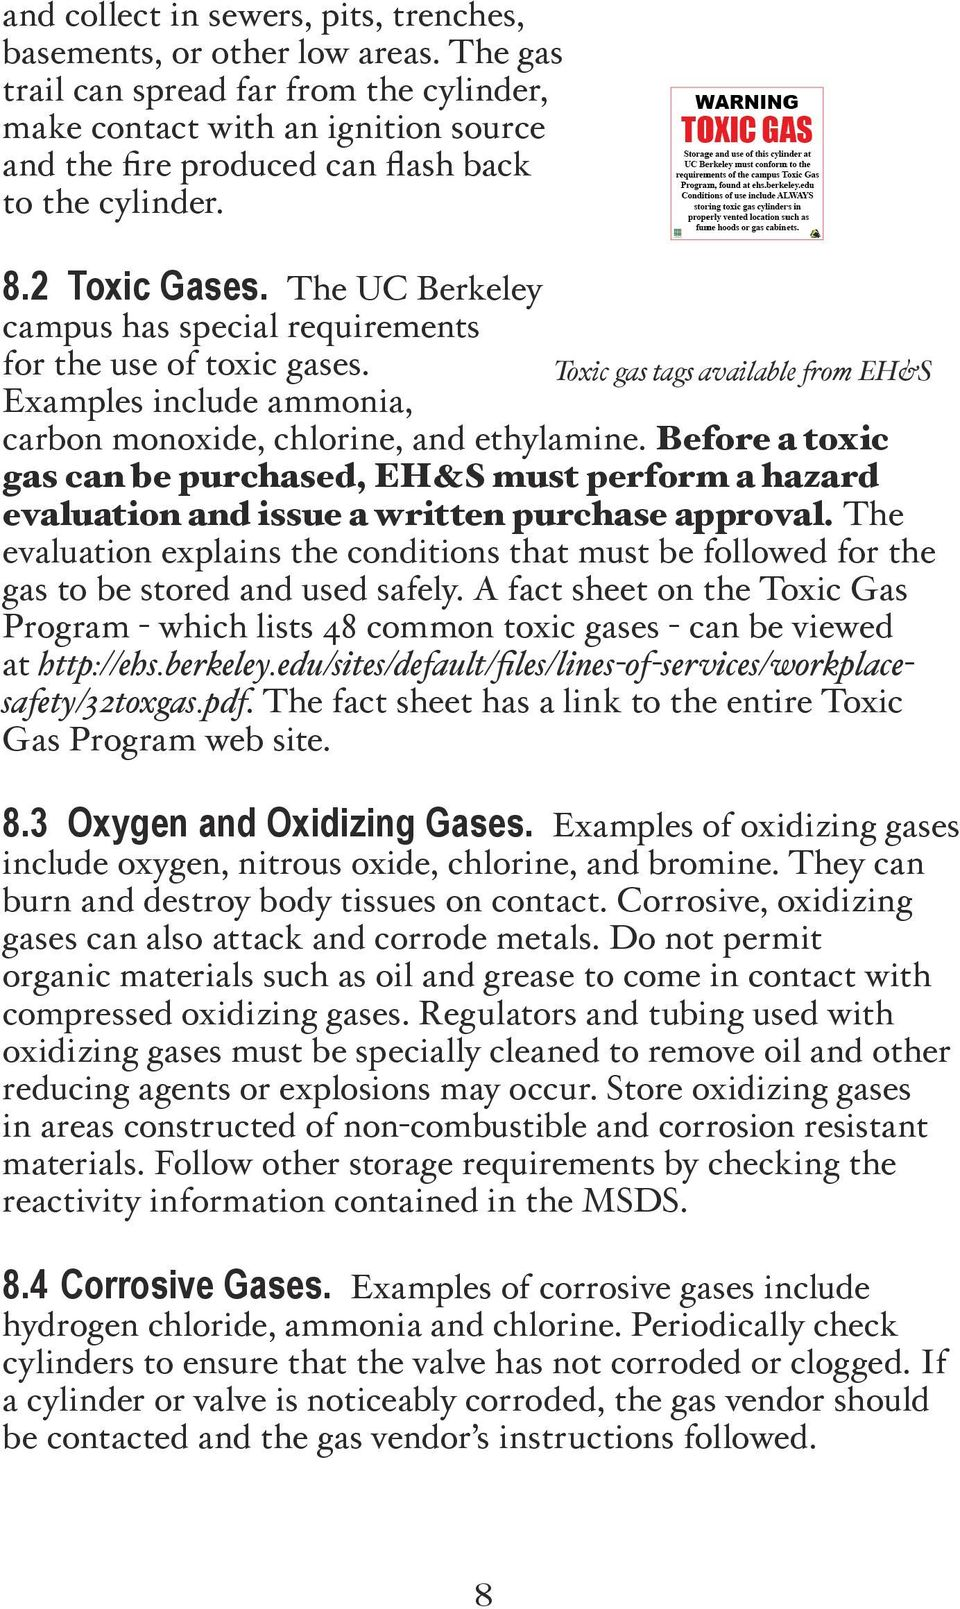 The UC Berkeley campus has special requirements for the use of toxic gases. Toxic gas tags available from EH&S Examples include ammonia, carbon monoxide, chlorine, and ethylamine.